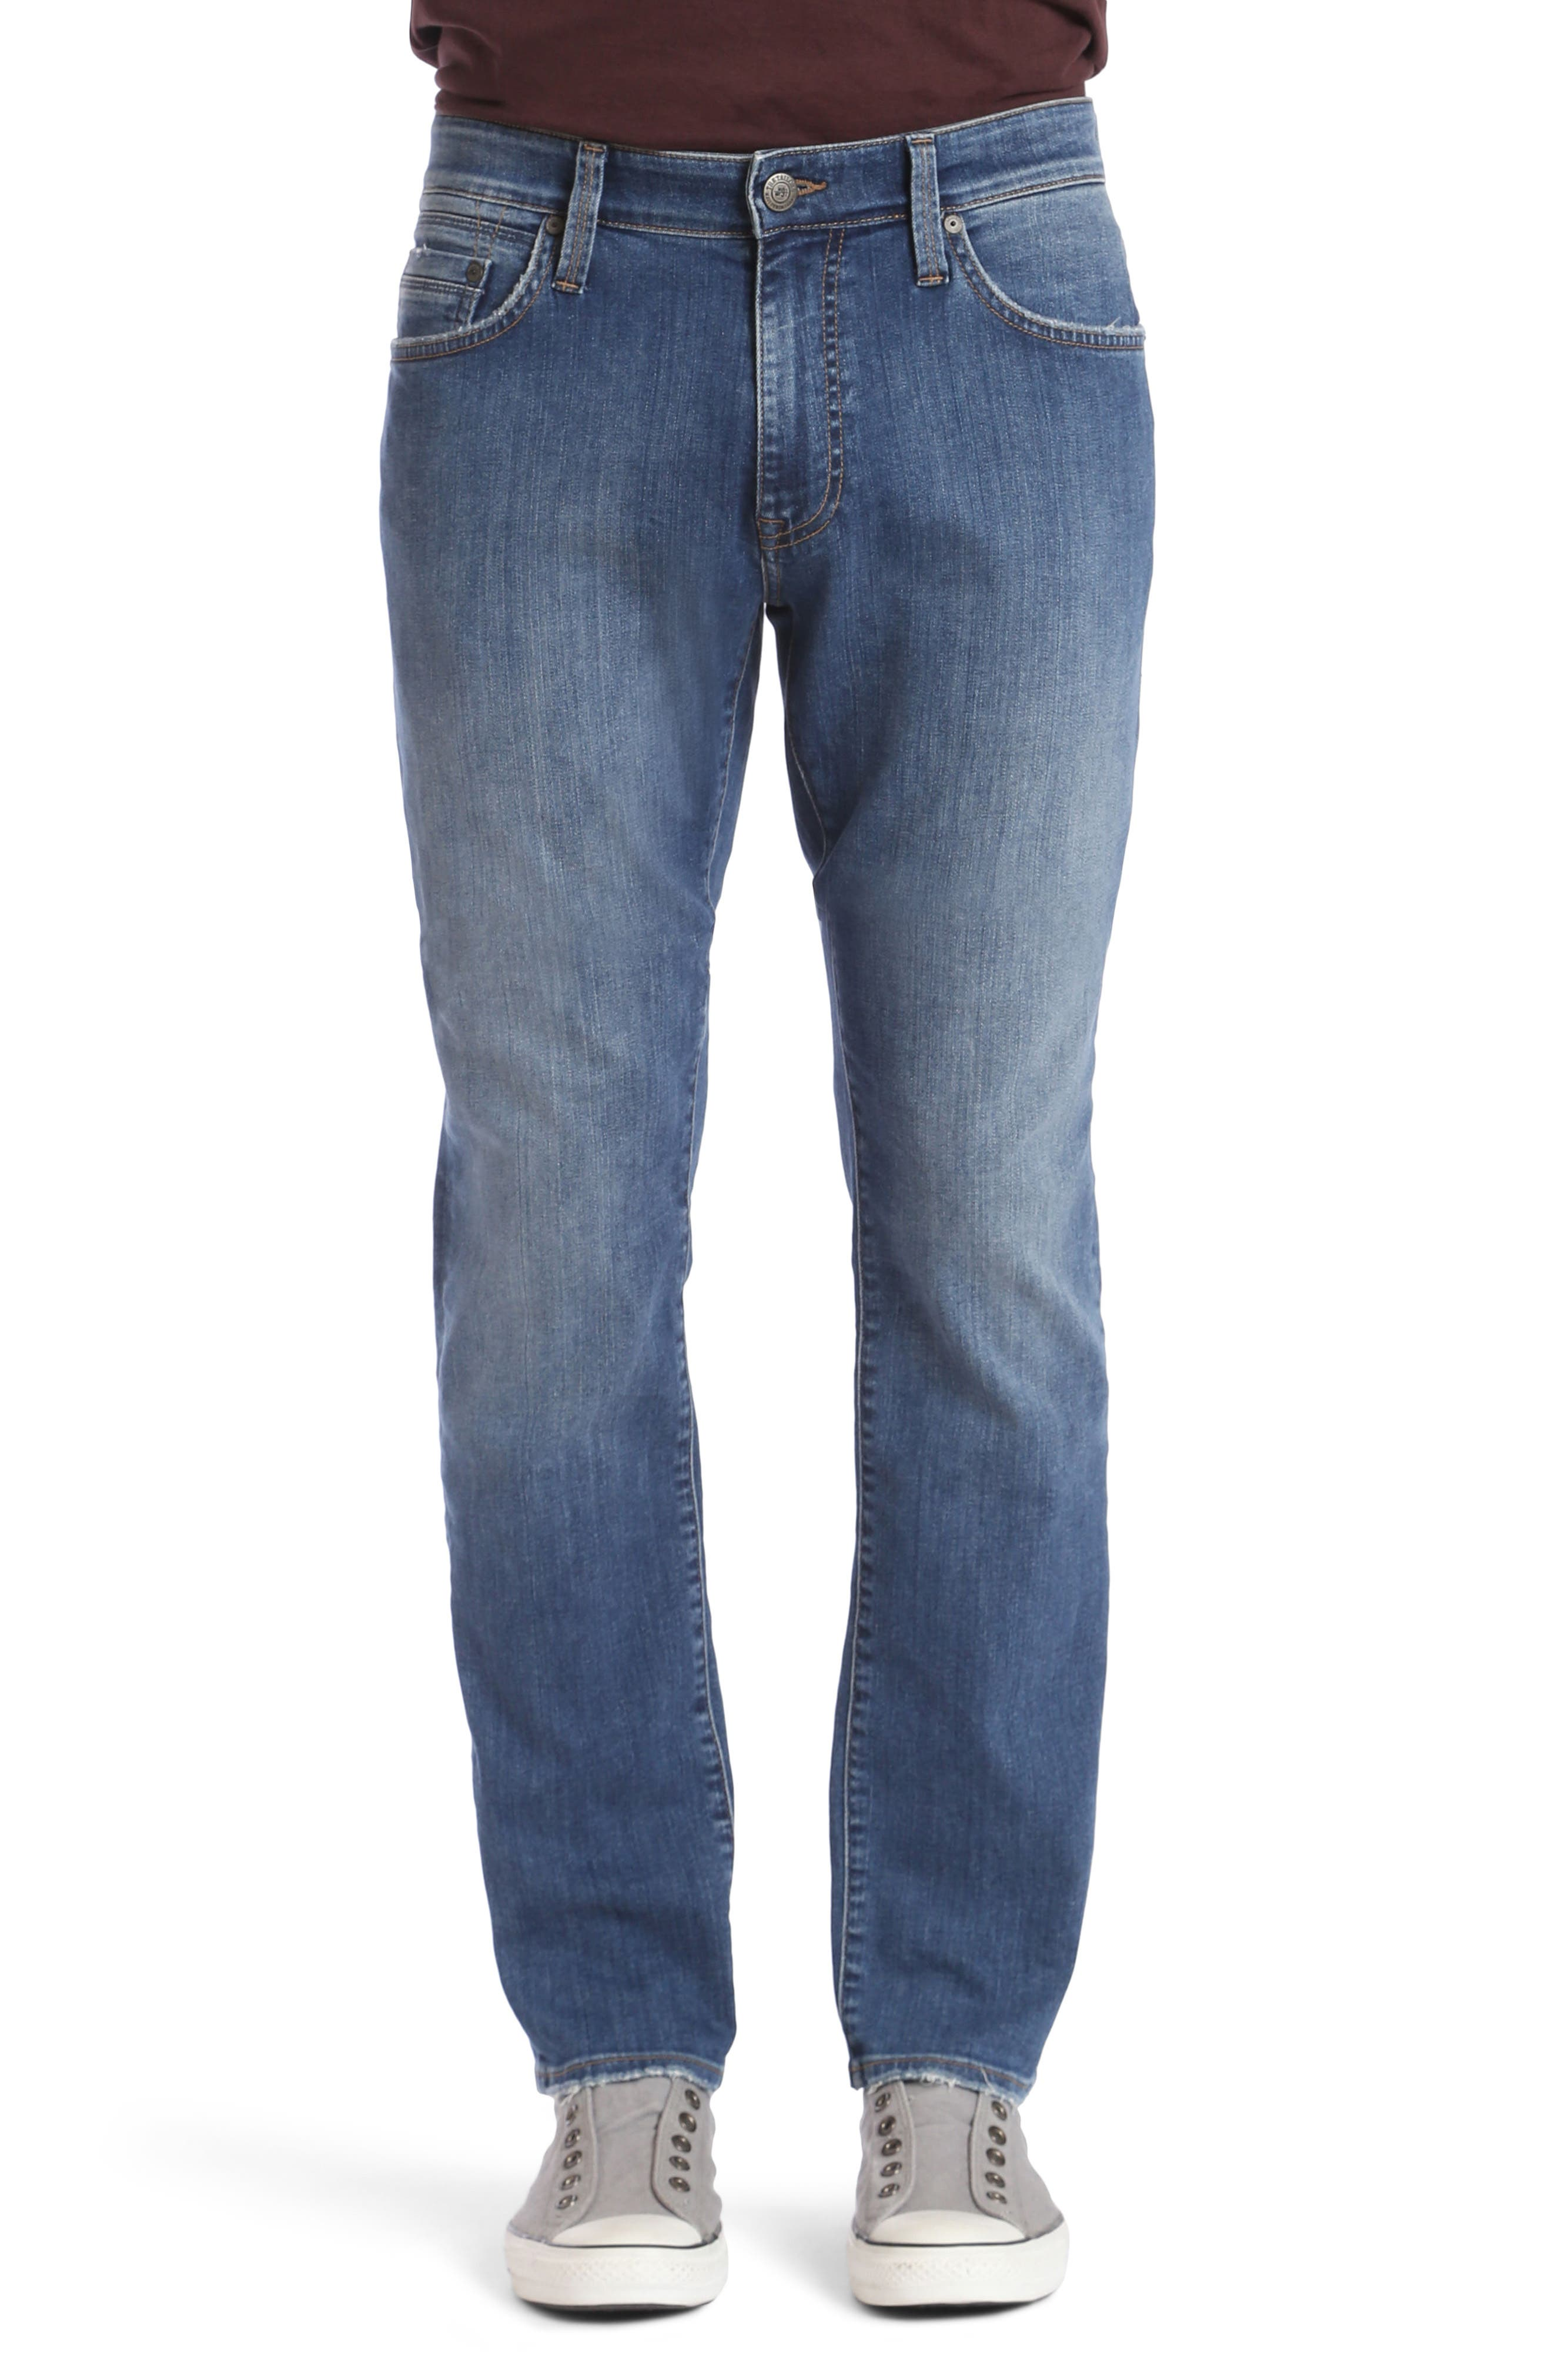 Matt Relaxed Fit Jeans,                         Main,                         color, 420